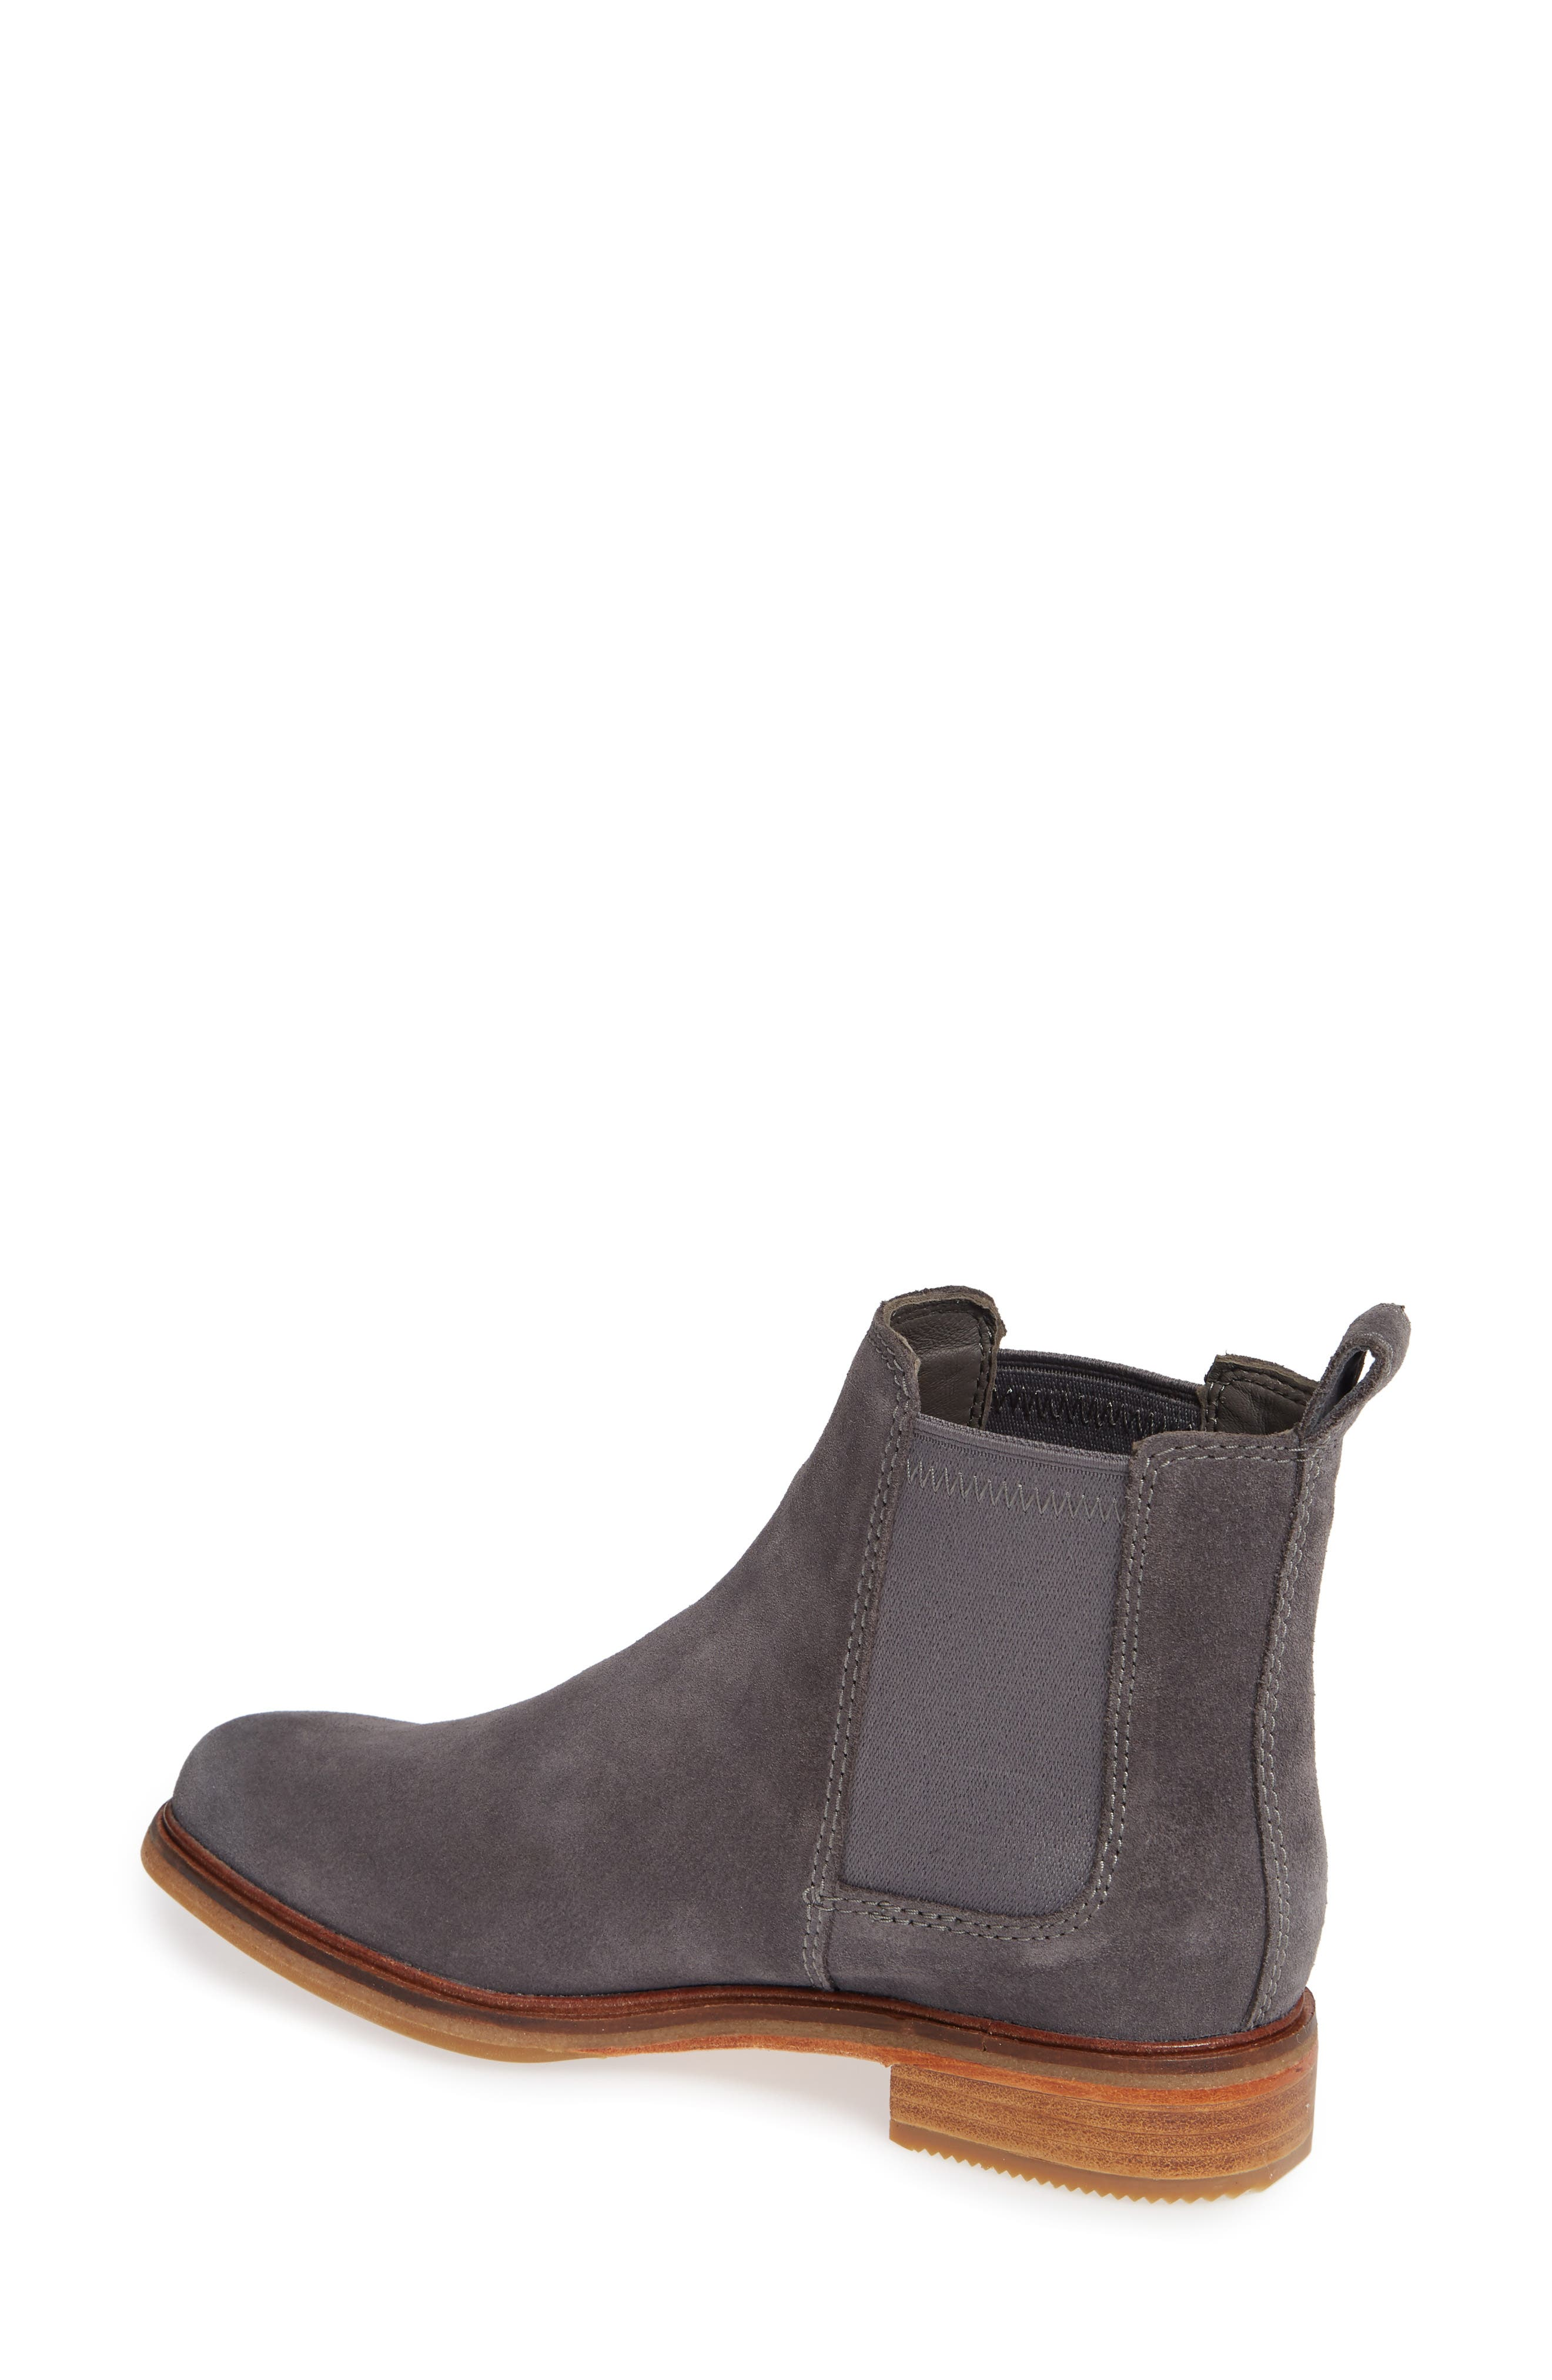 Clarkdale Arlo Boot,                             Alternate thumbnail 2, color,                             GREY SUEDE